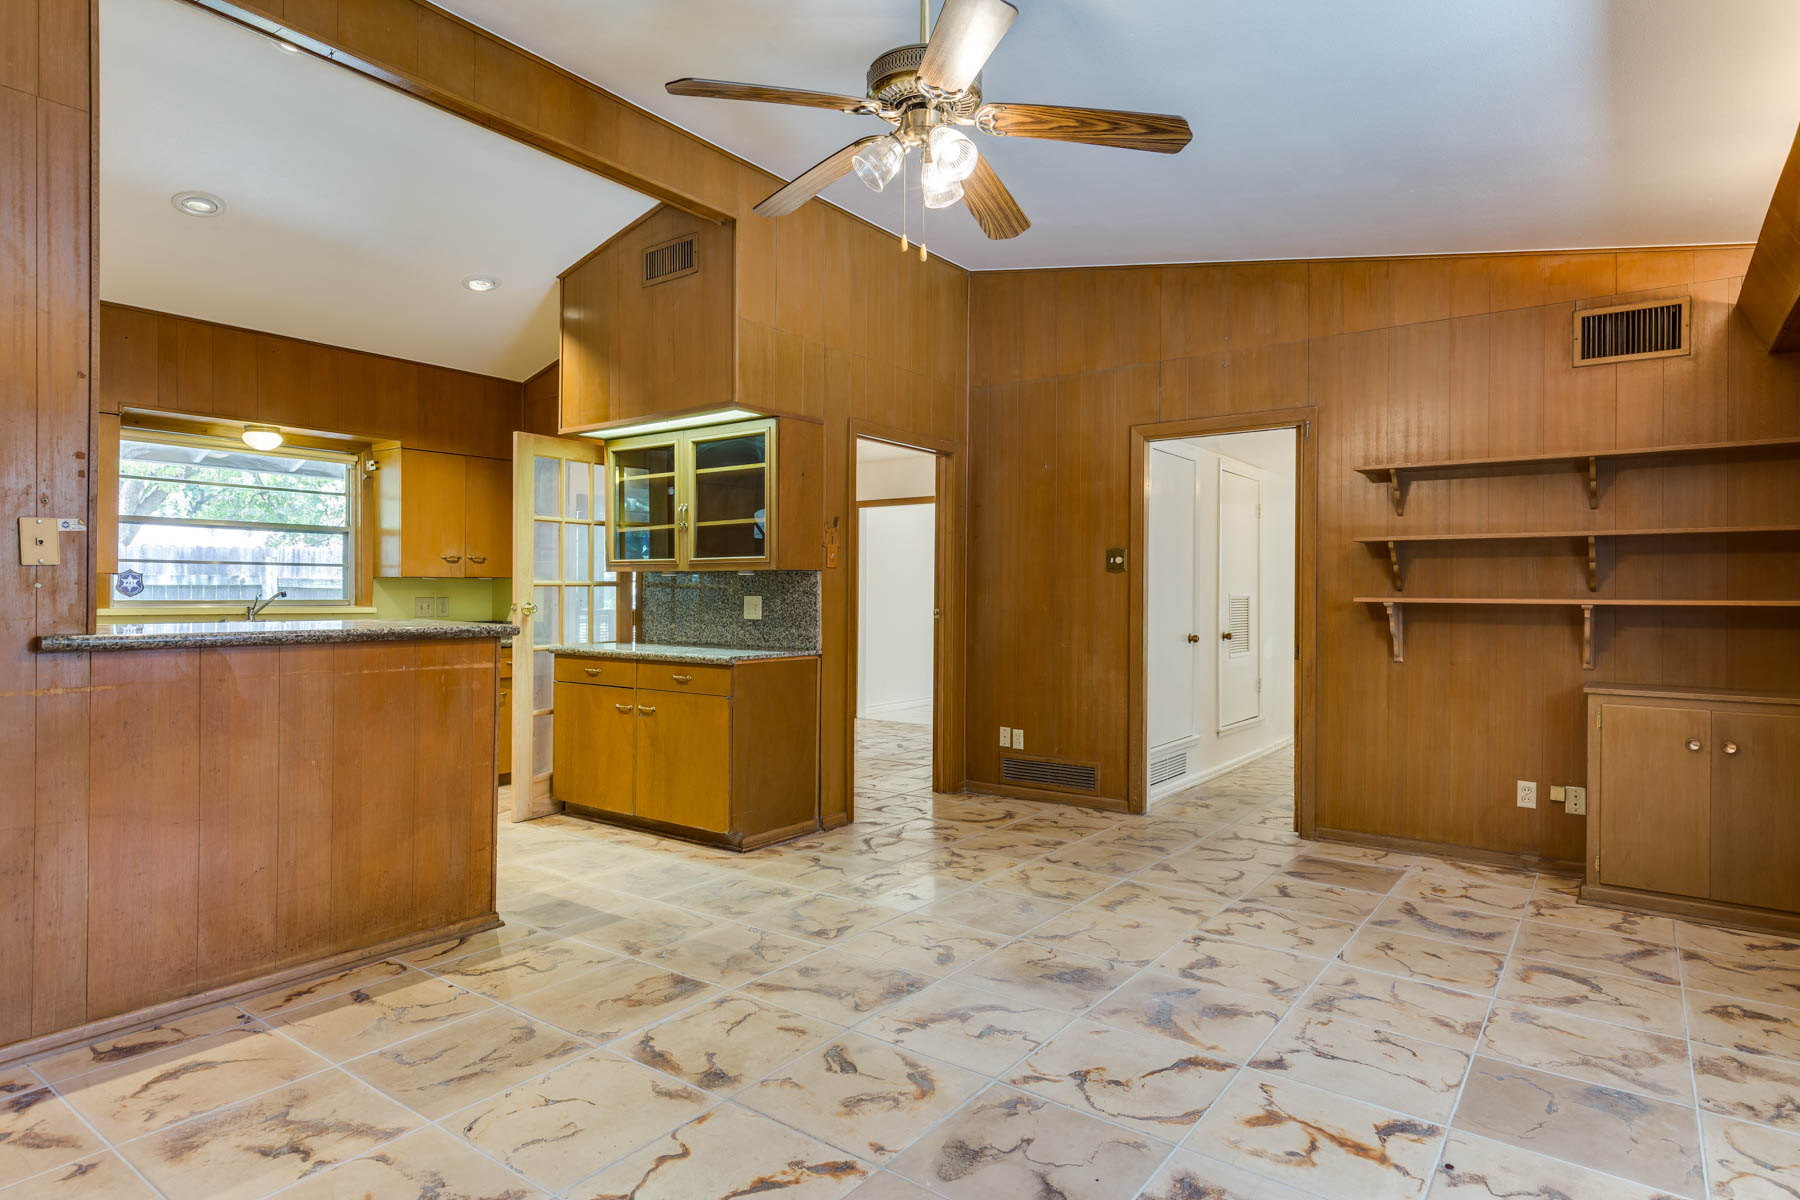 Additional photo for property listing at Spacious Home in Desirebale AHISD 8235 Greenbriar San Antonio, Texas 78209 United States